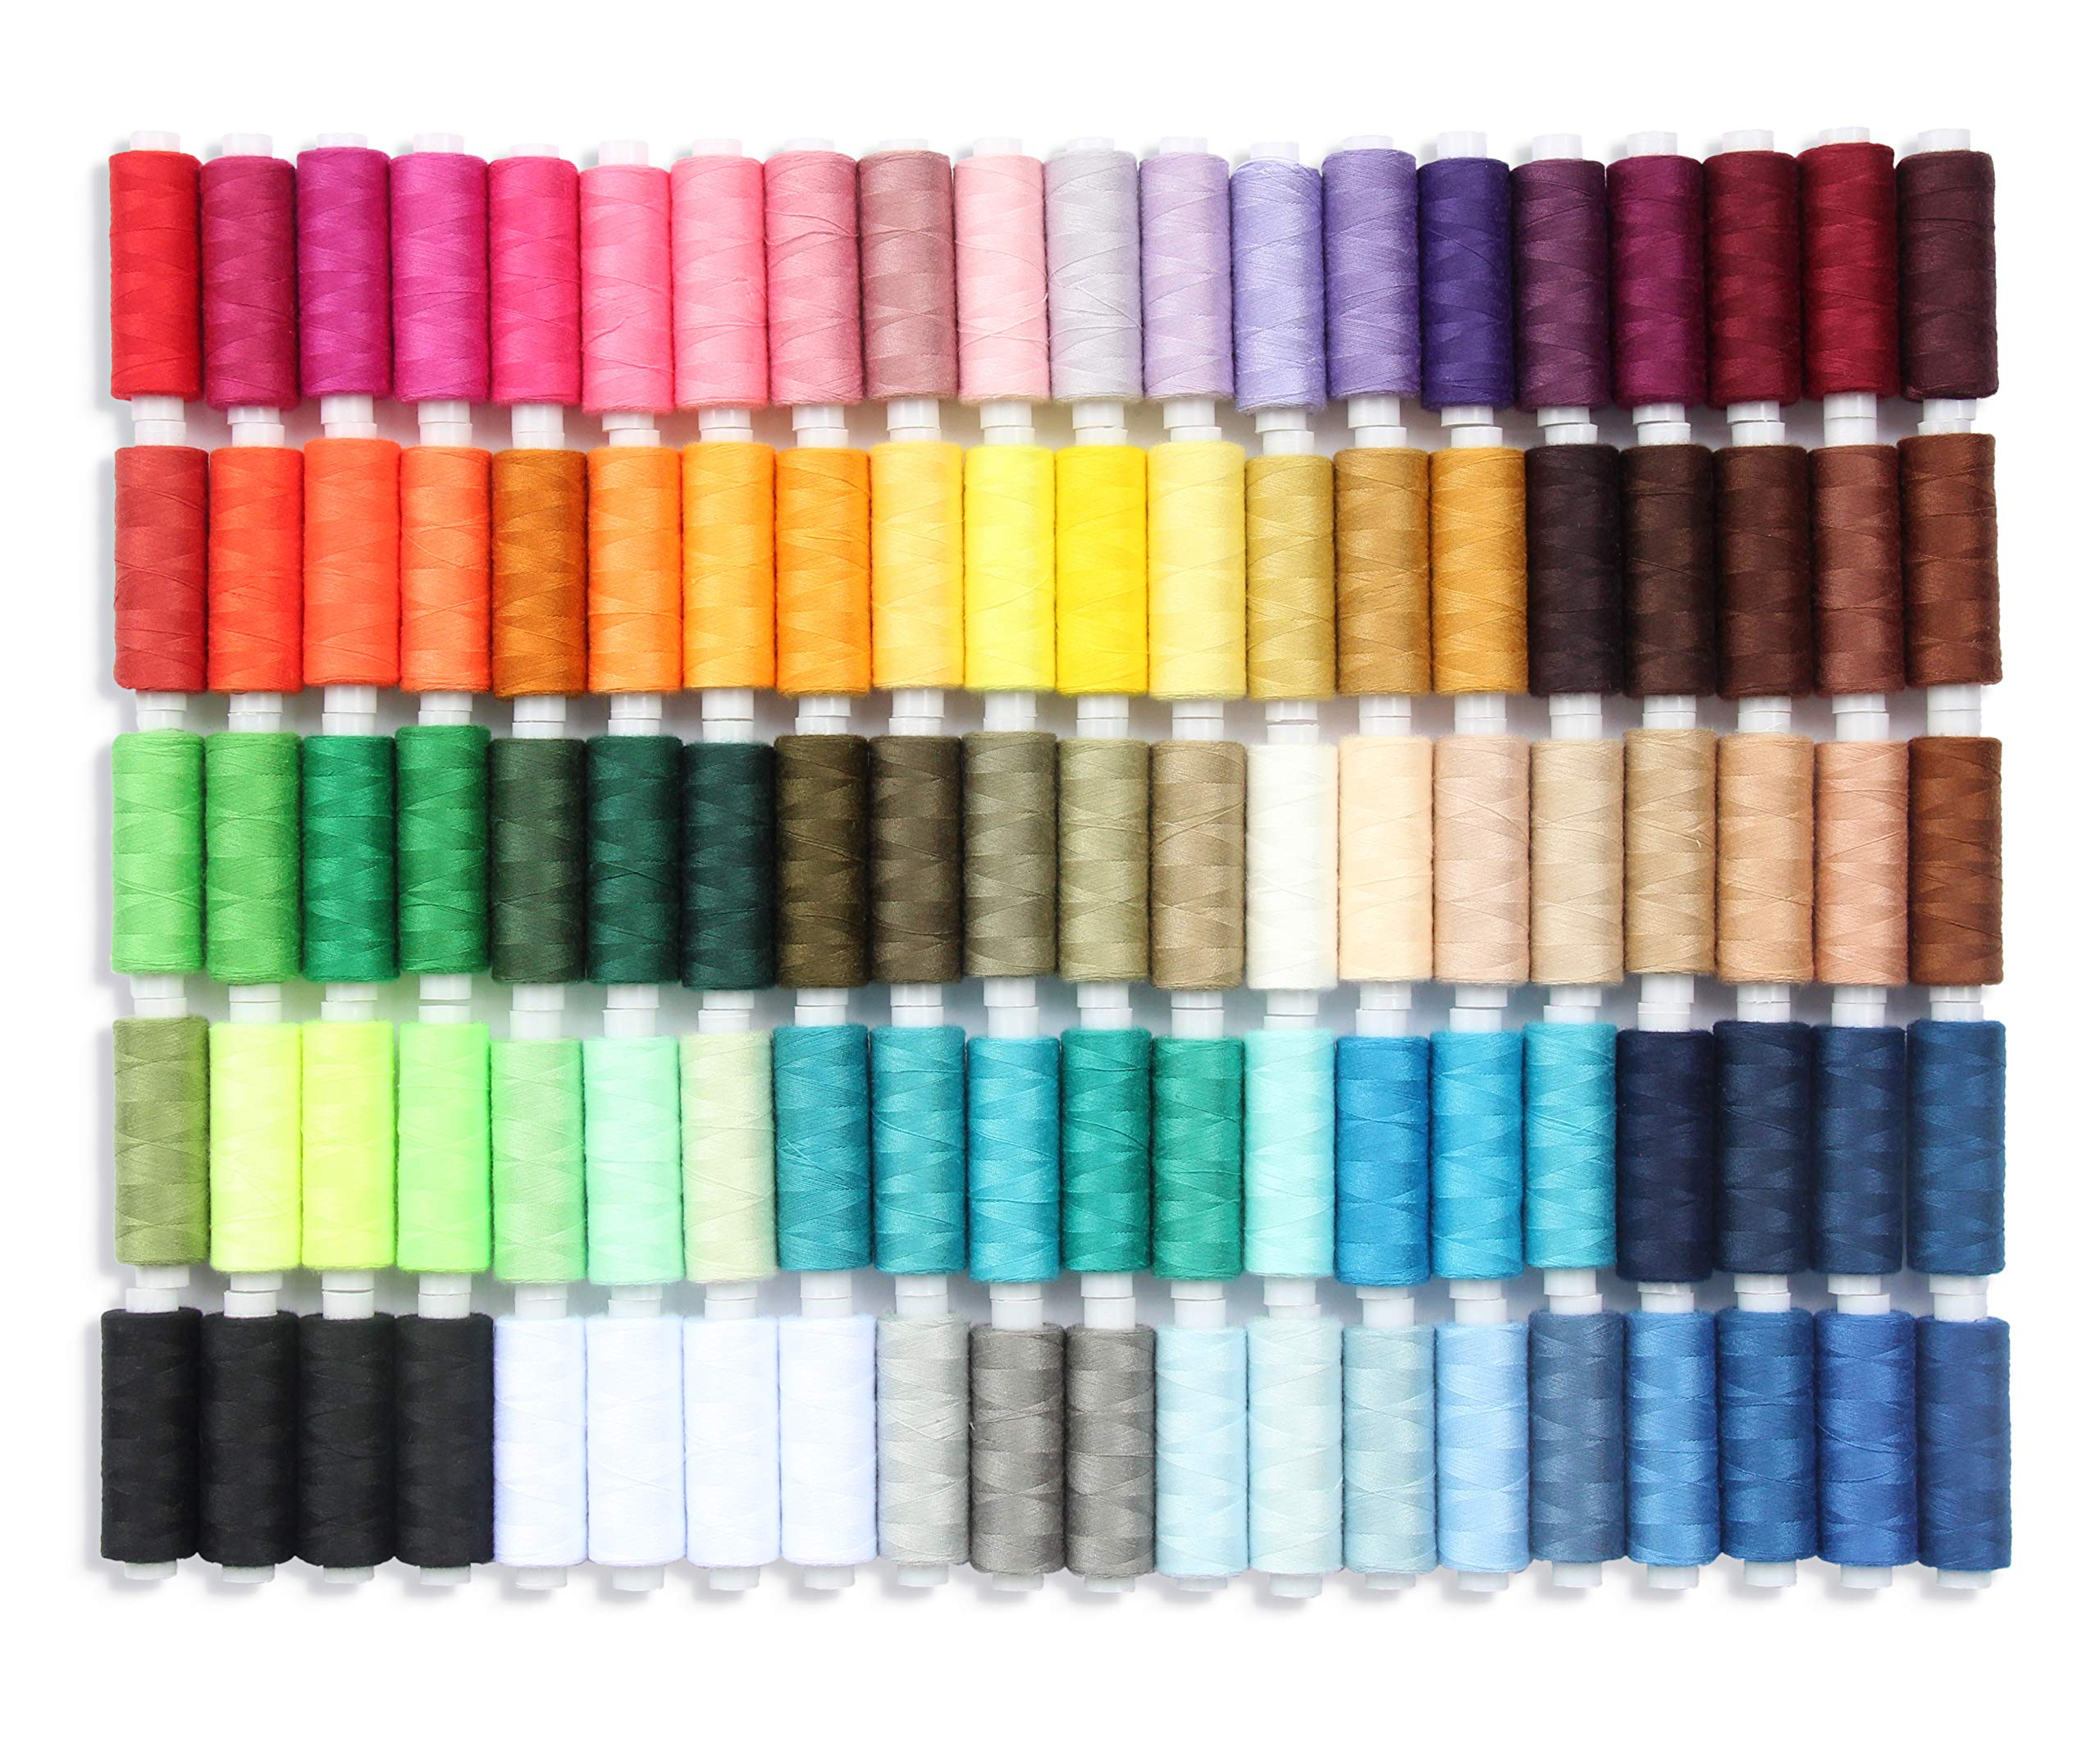 Sewing Thread Set of 100 All Purpose Polyester Threads, 250 Yards Per Spool in Assortment Colors Plus 4 Spools of Black and White Each, Good for Hand Stitching, Machine, Quilting & Crafts. by Sewing Aid